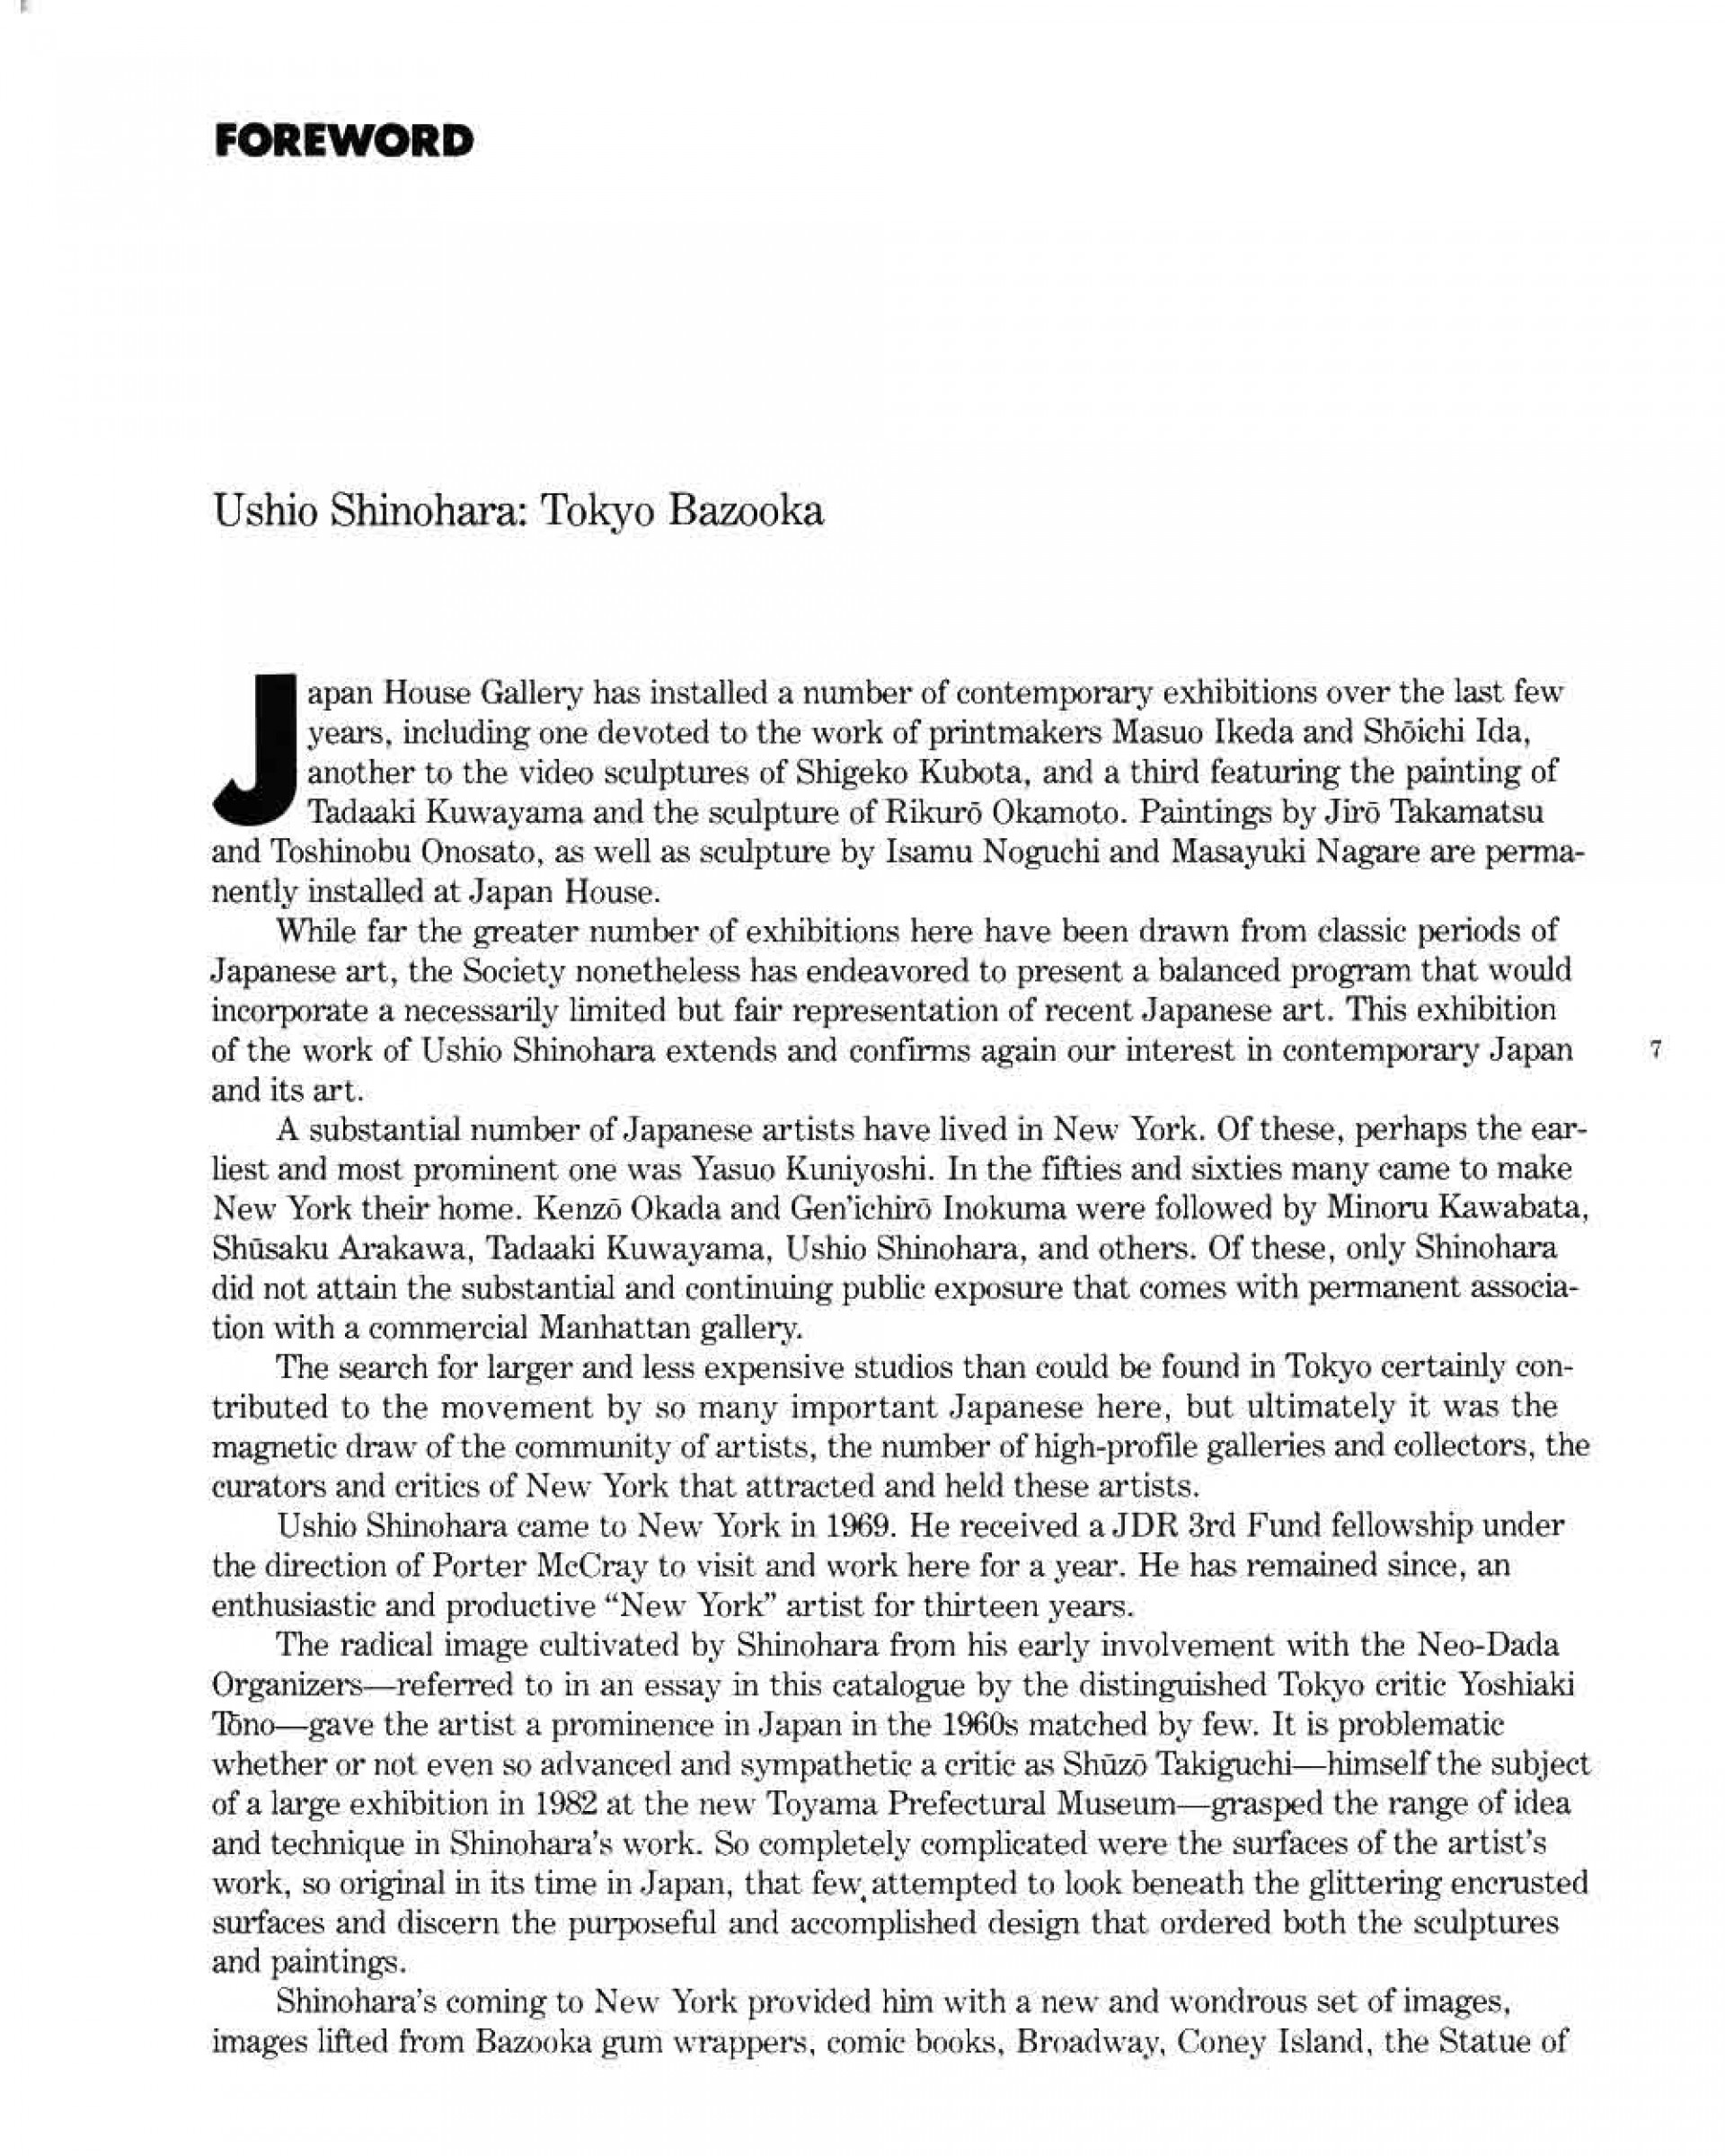 015 How To Write An Essay With Quotes Example Ushio Shinohara Tokyo Bazooka Pg 1 Imposing In Mla Integrate Quotations Writing Essays-apa Or Include A Direct Quote Apa 1920